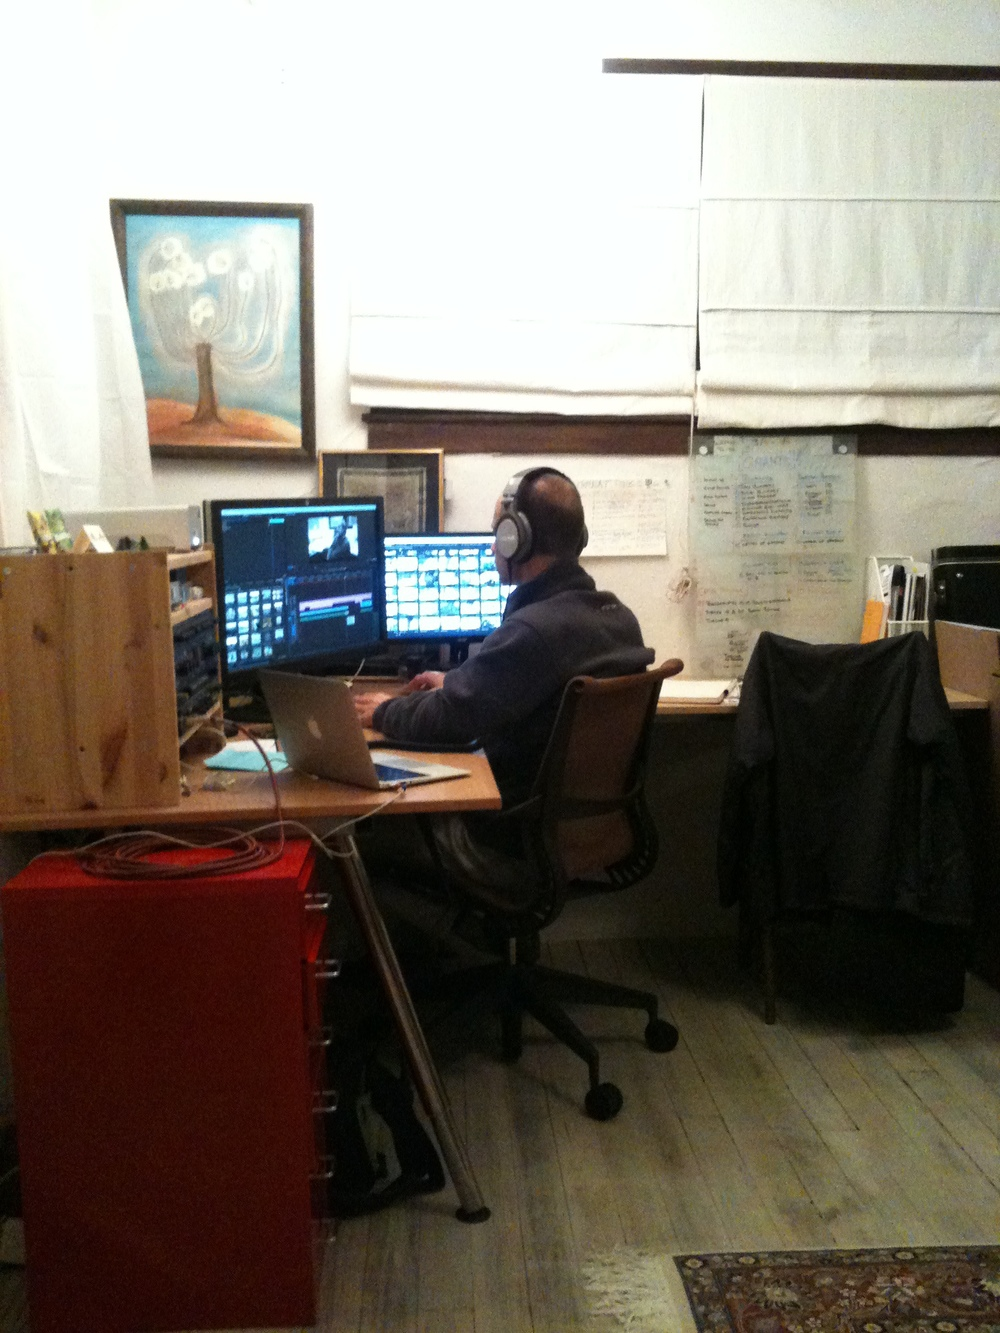 Tom MIller, Editing at home